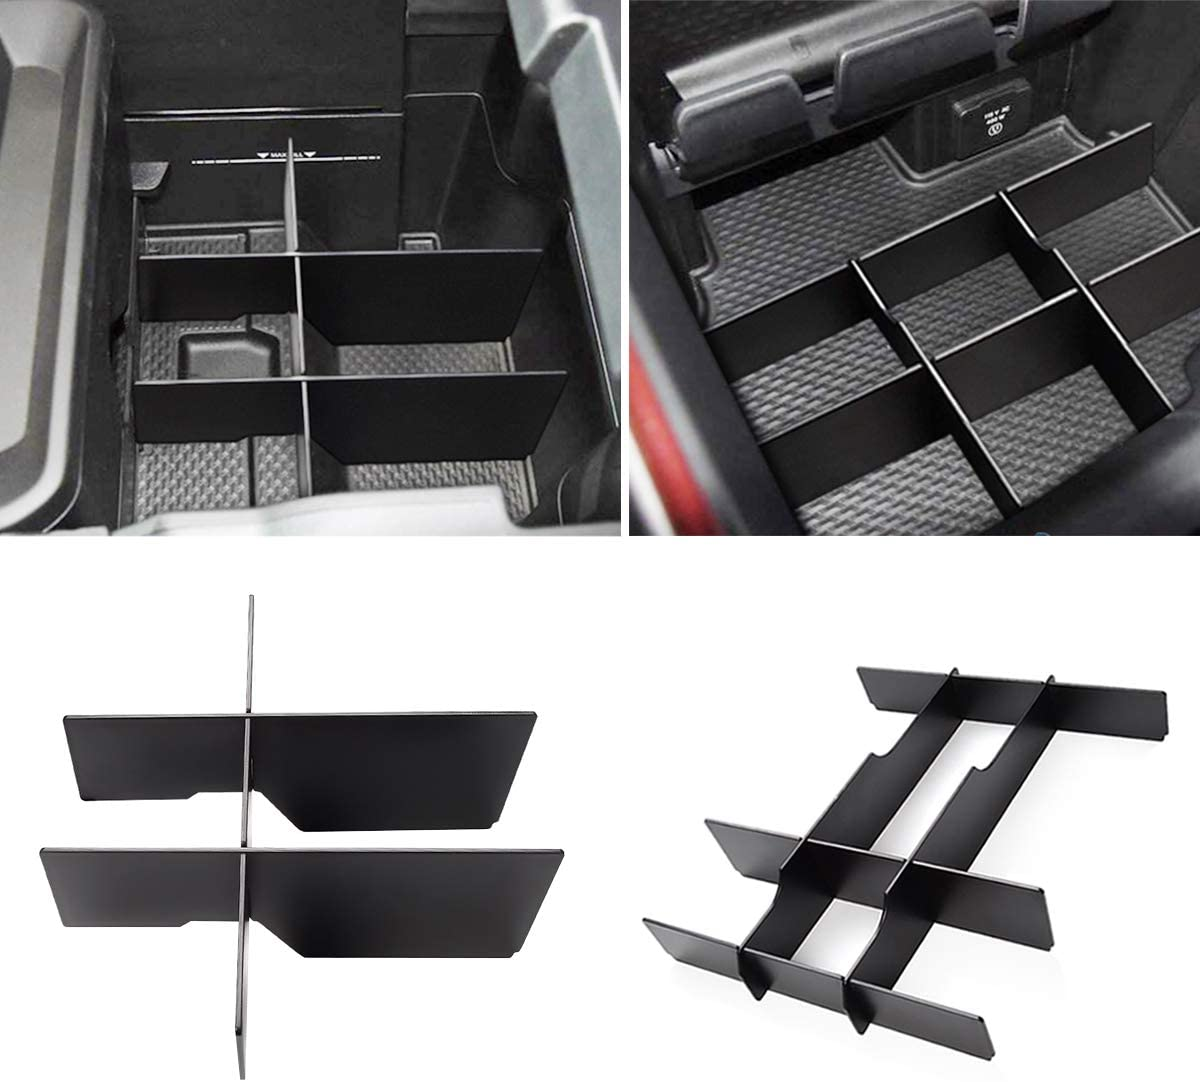 Yumzeco Center Console OFFer Fees free Organizer Insert Ram for Dodge 15 Divider